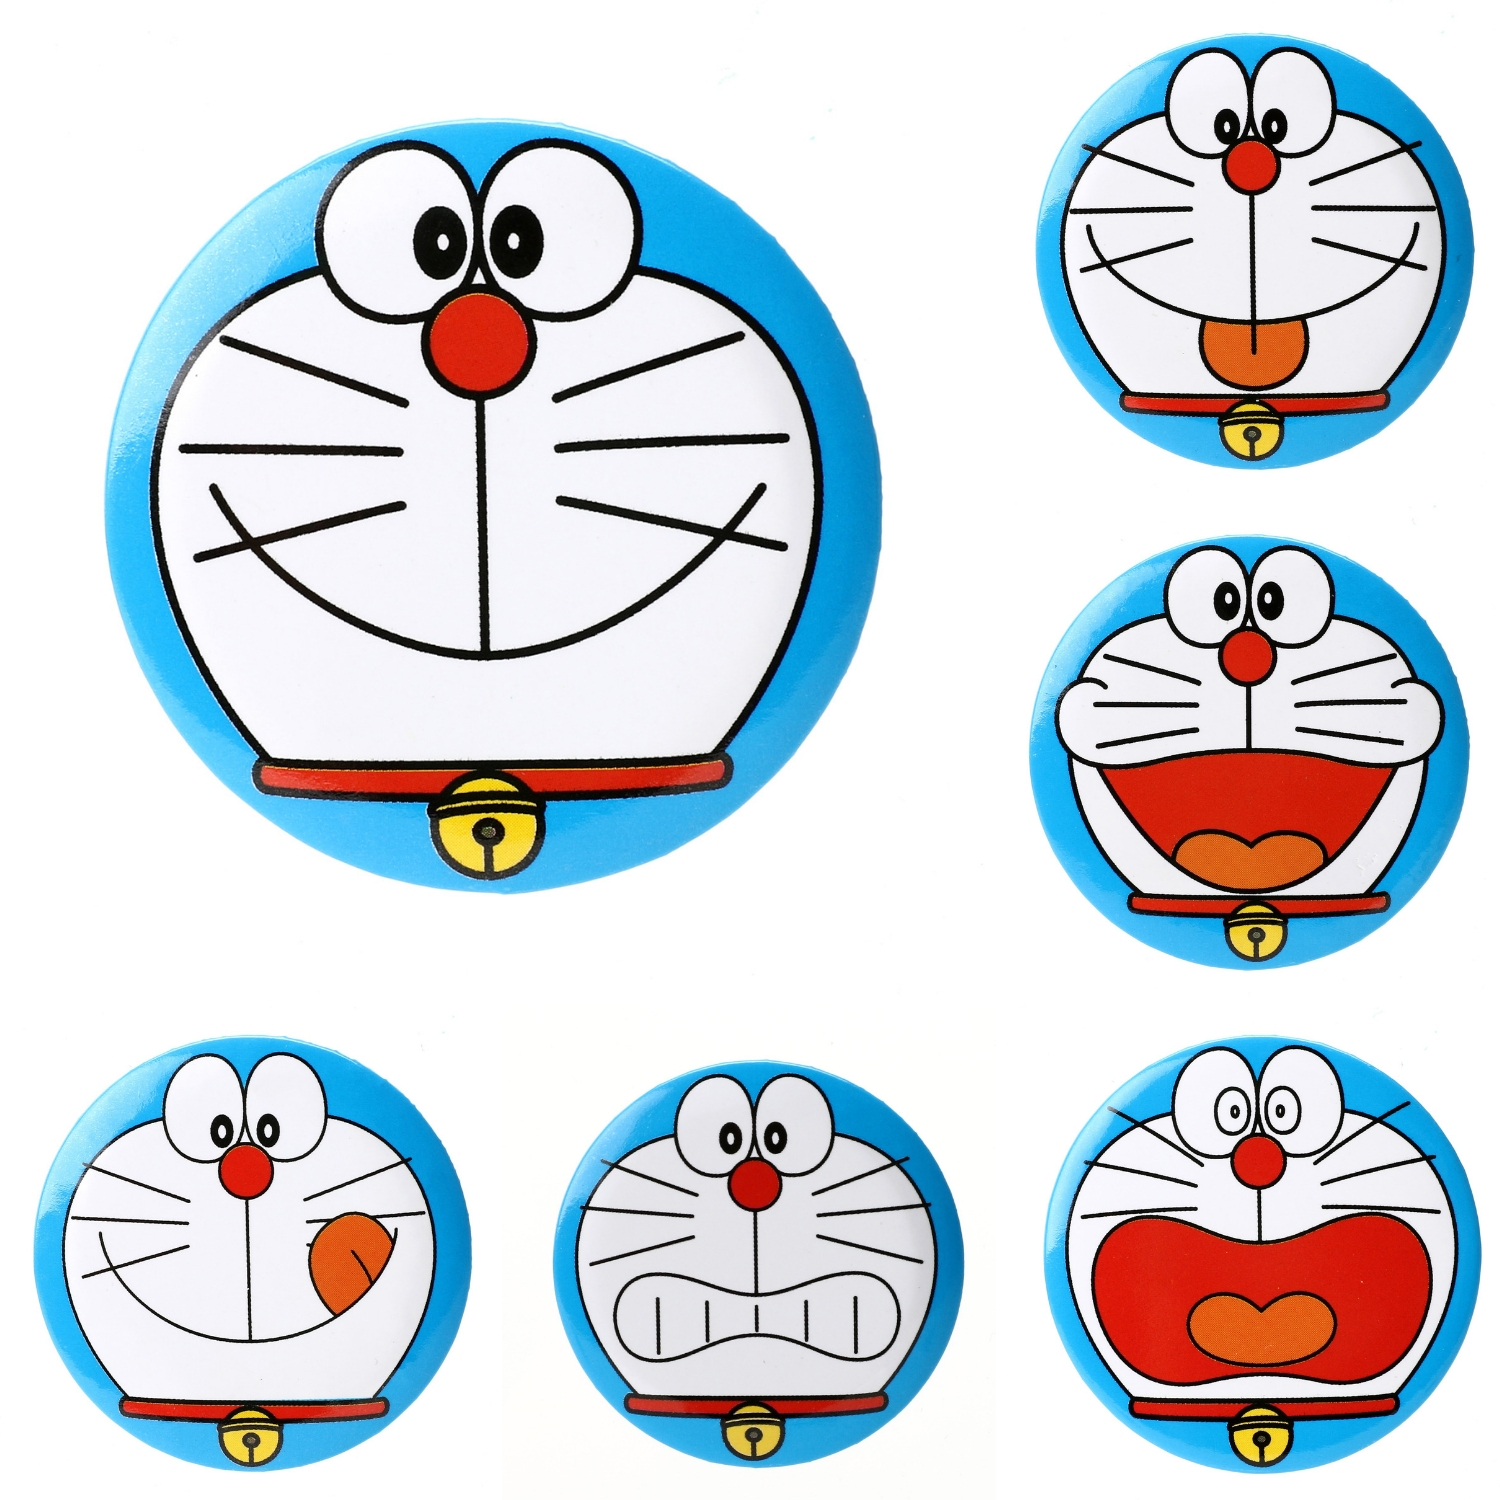 6in1 Badge (1500x1500).jpg